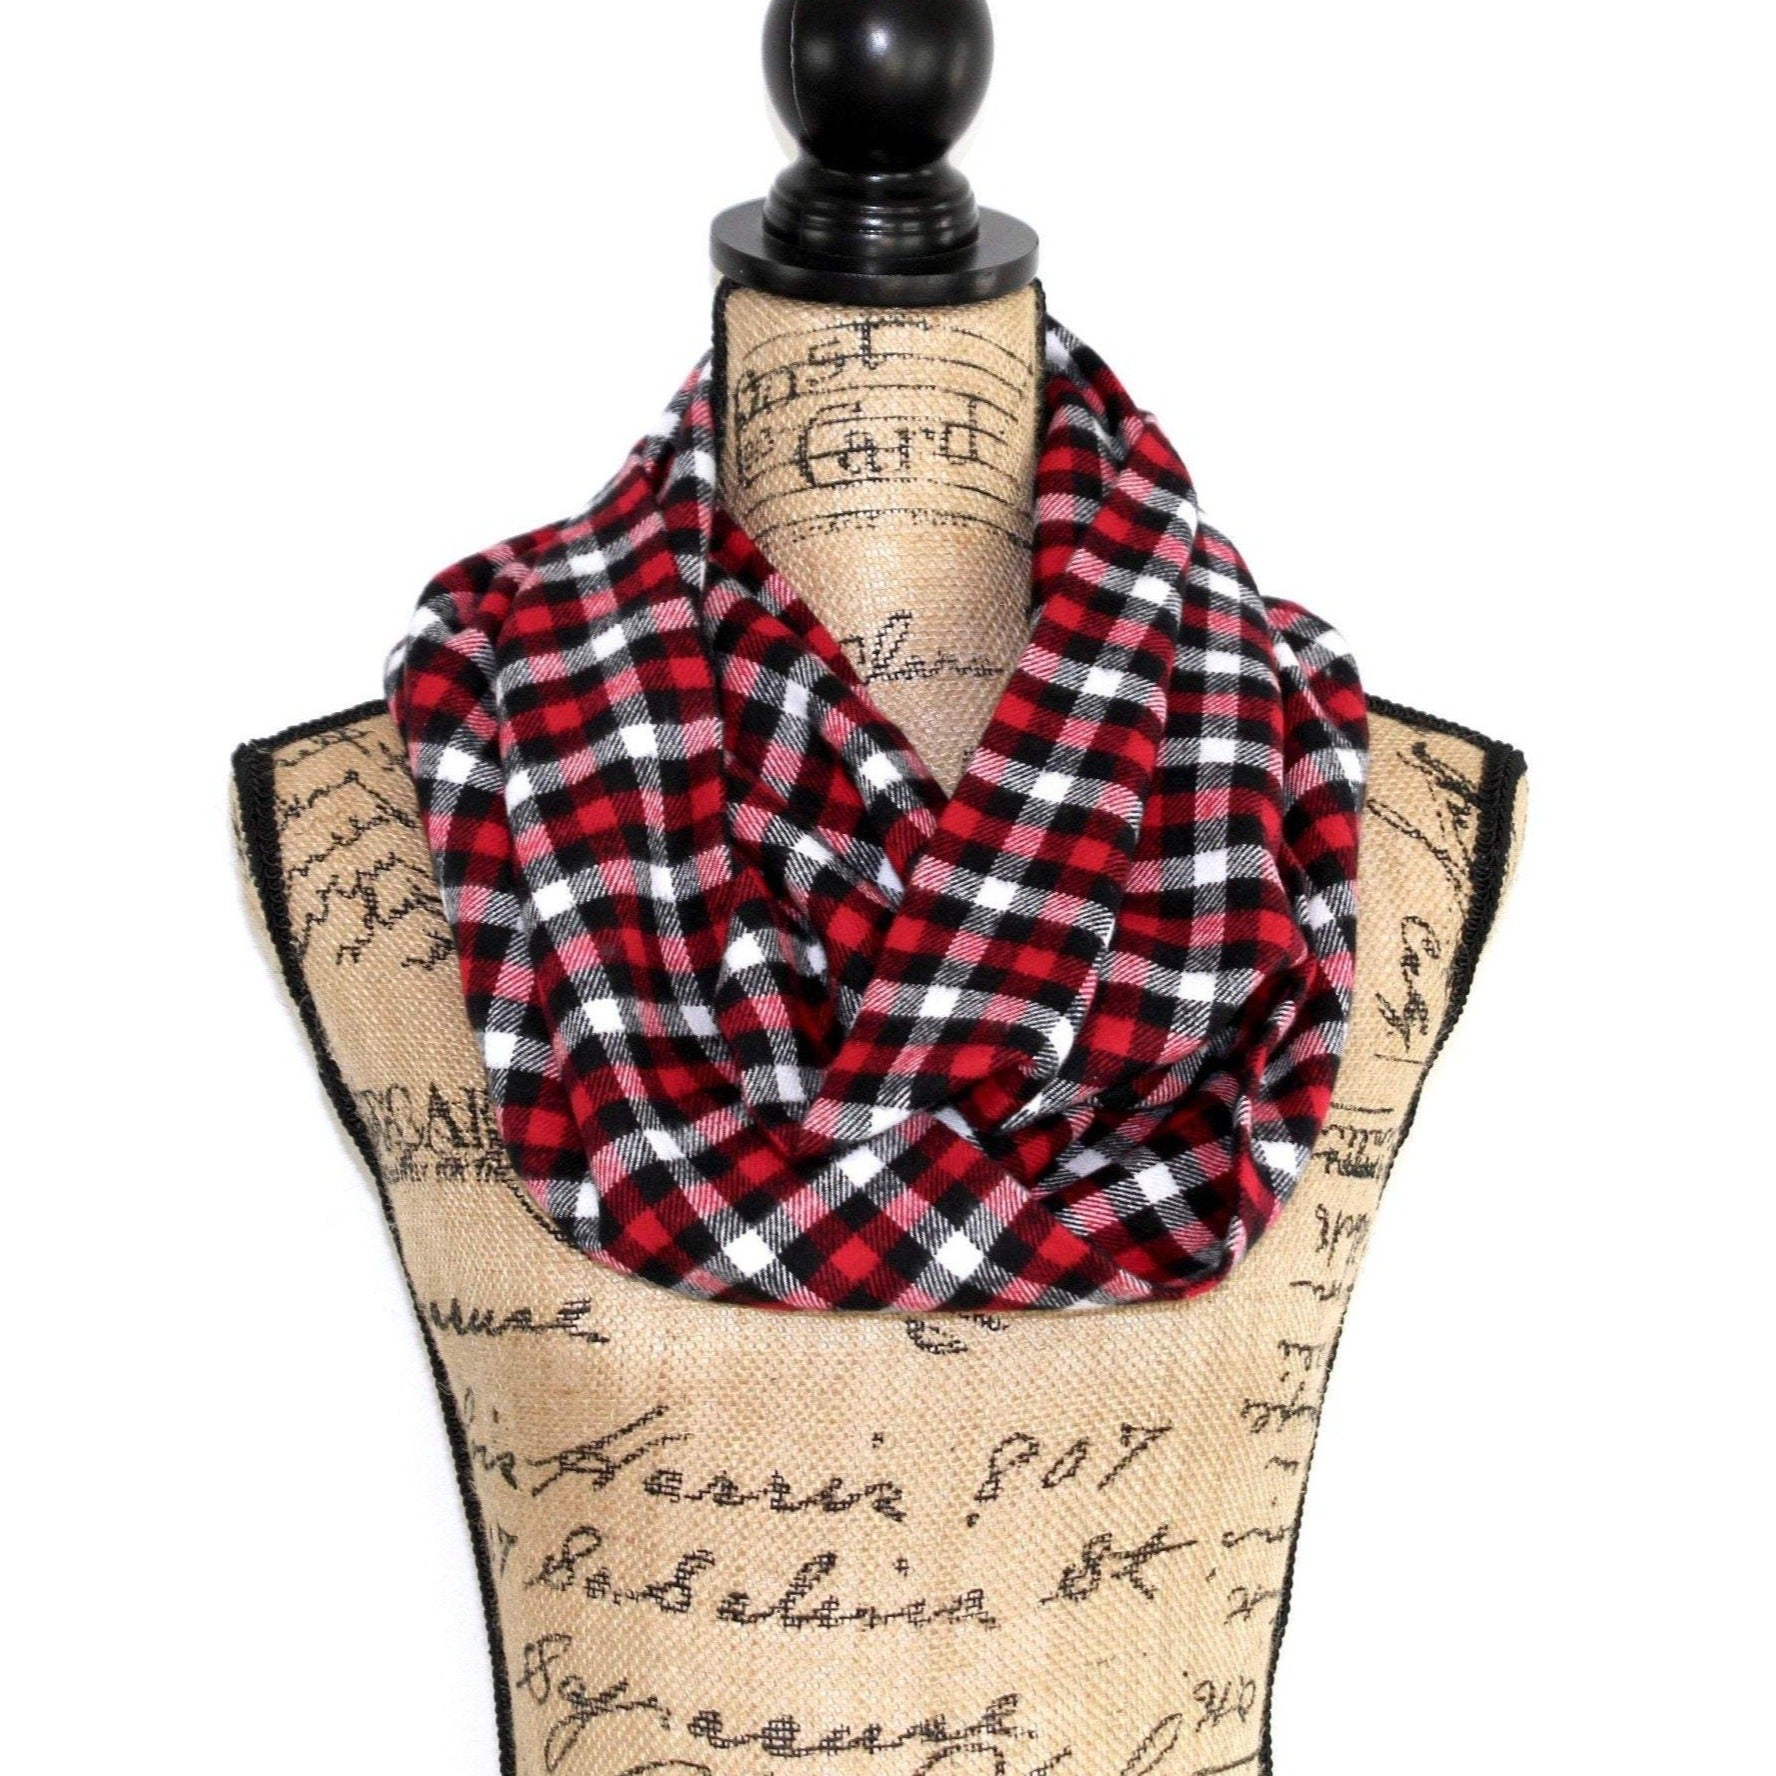 Red, White, Black, and Gray Small Check Plaid Flannel Infinity Scarf Tartan Wrap Buffalo Gingham Shawl